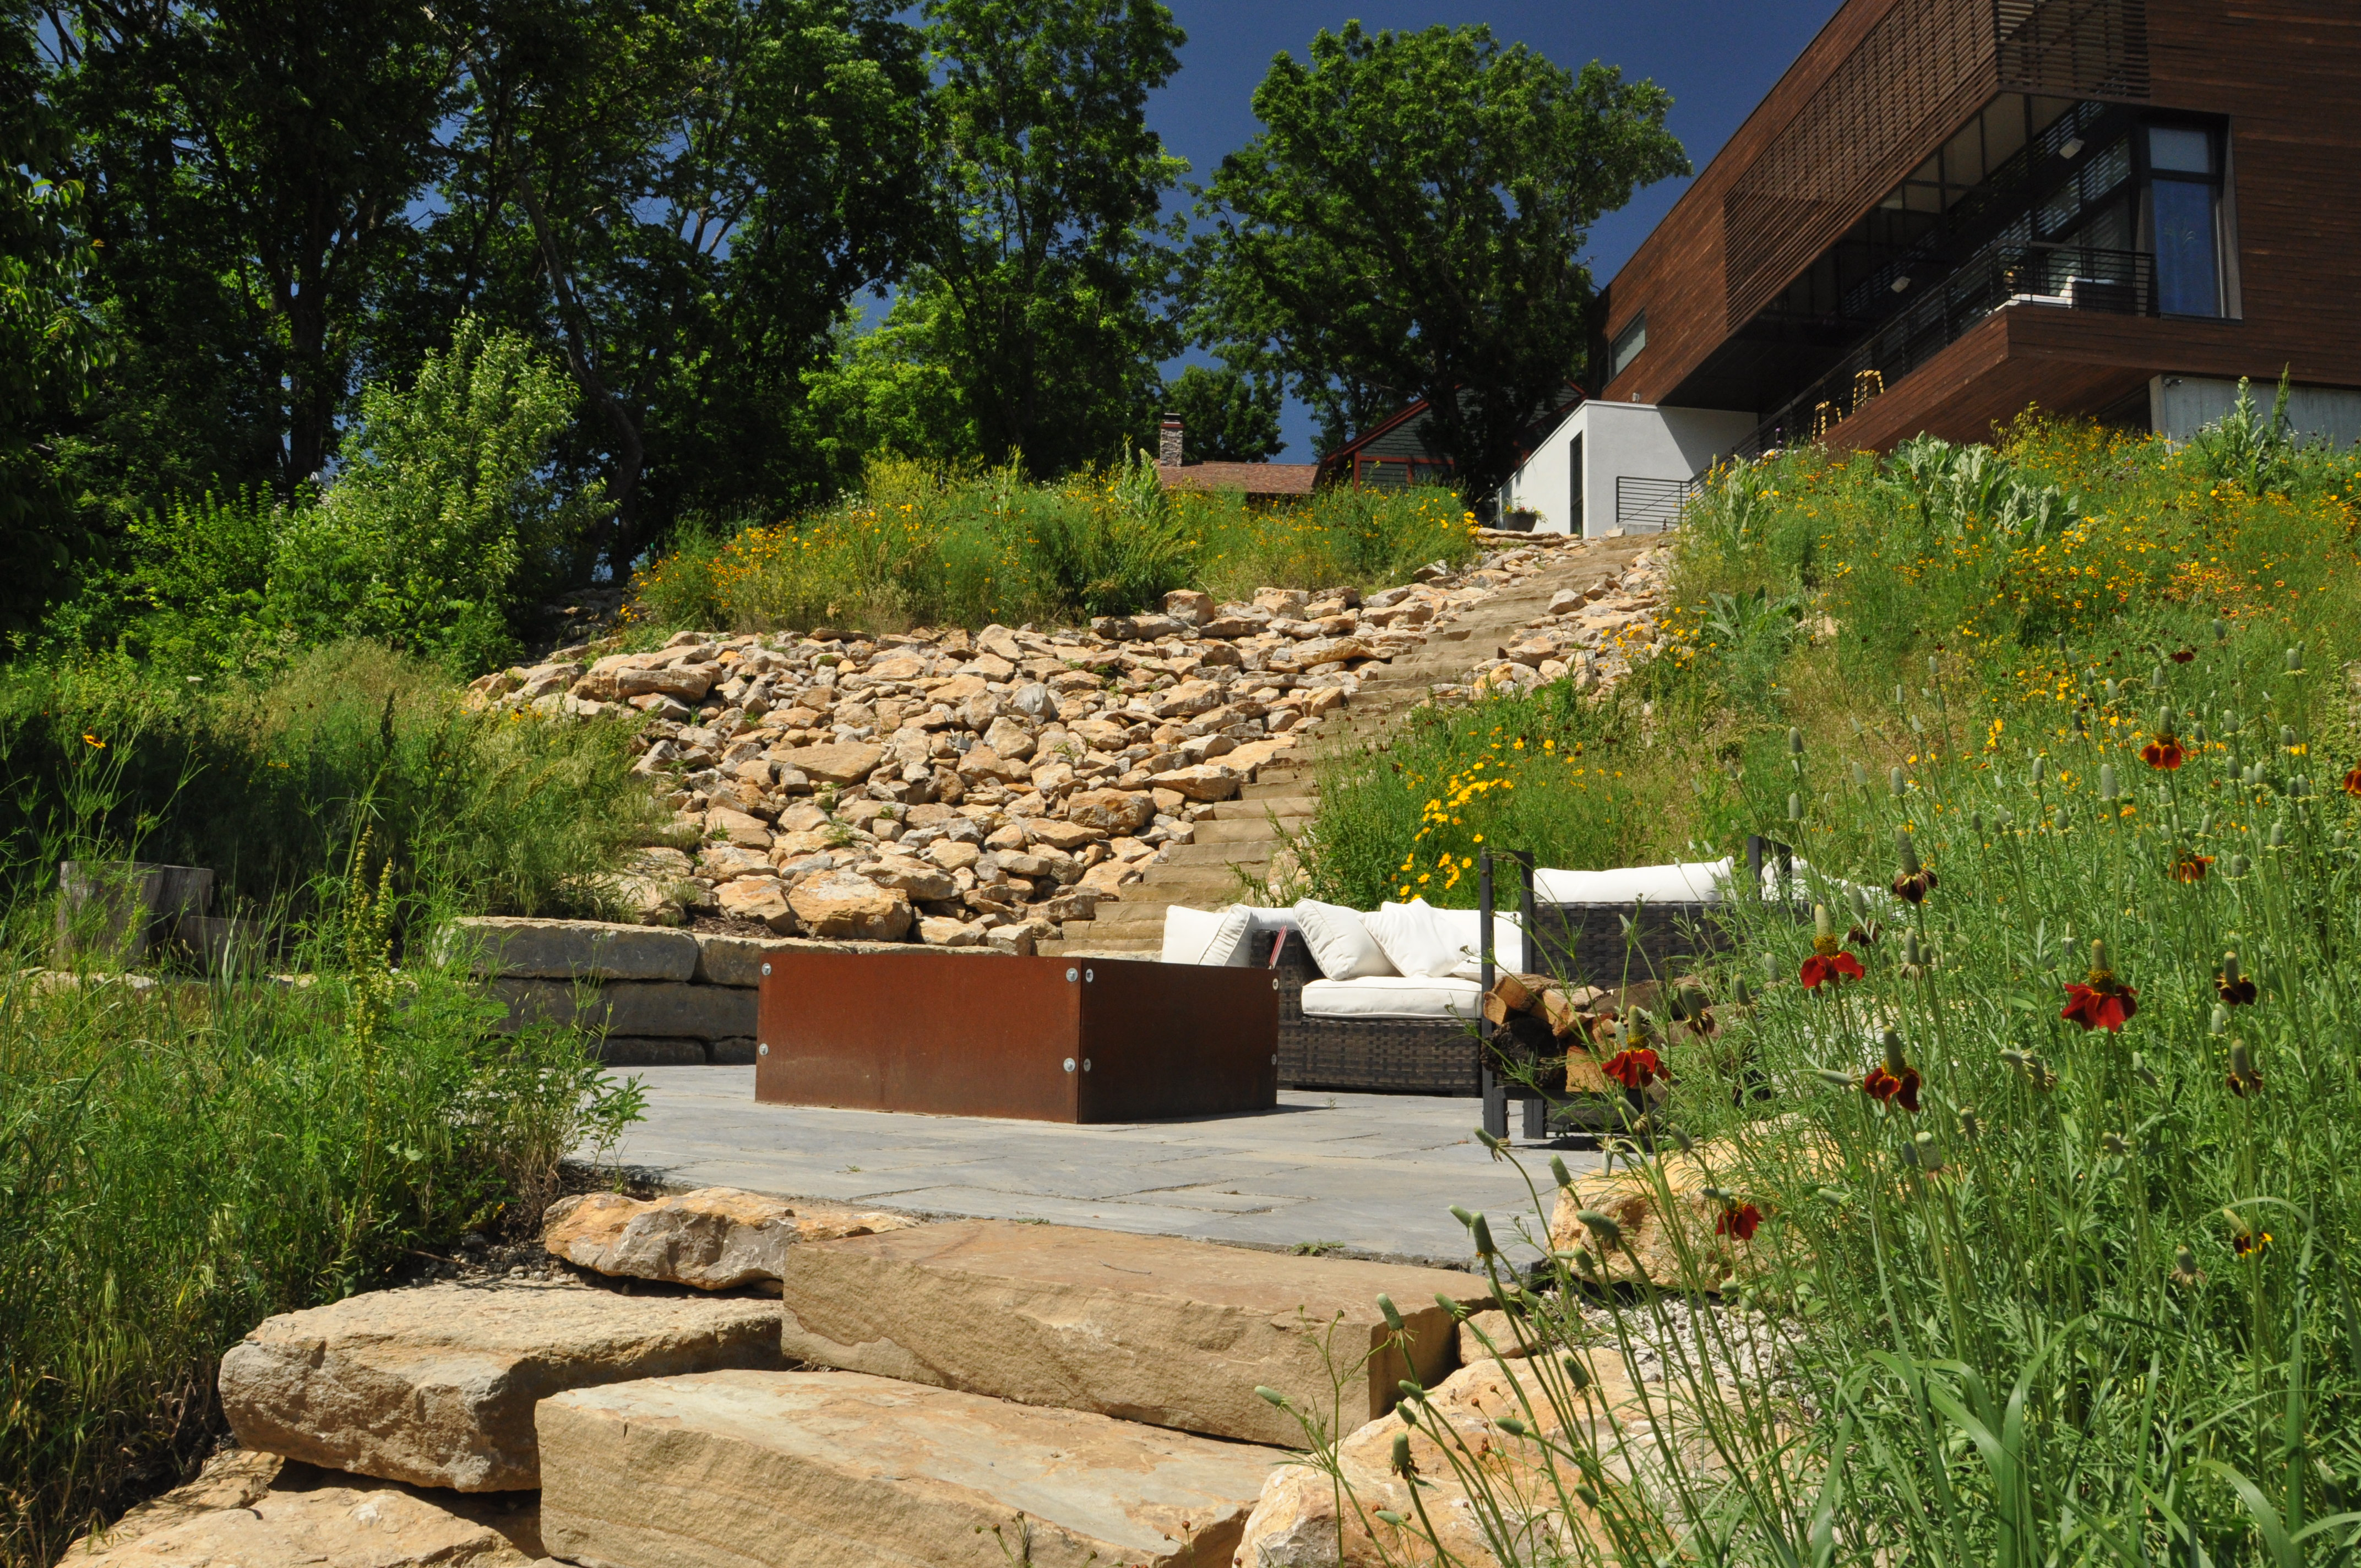 This contemporary lakeside home was built atop a hill overlooking a large lake. During construction, excavators left tons of limestone rock on the crest of the hill. Rather than face the expense of removing it from the site, Embassy designer Dan Nelson found a way to utilize it in the design. The stone was used to cover the slope and a native prairie mix was sown on the poor soil on the hillside.